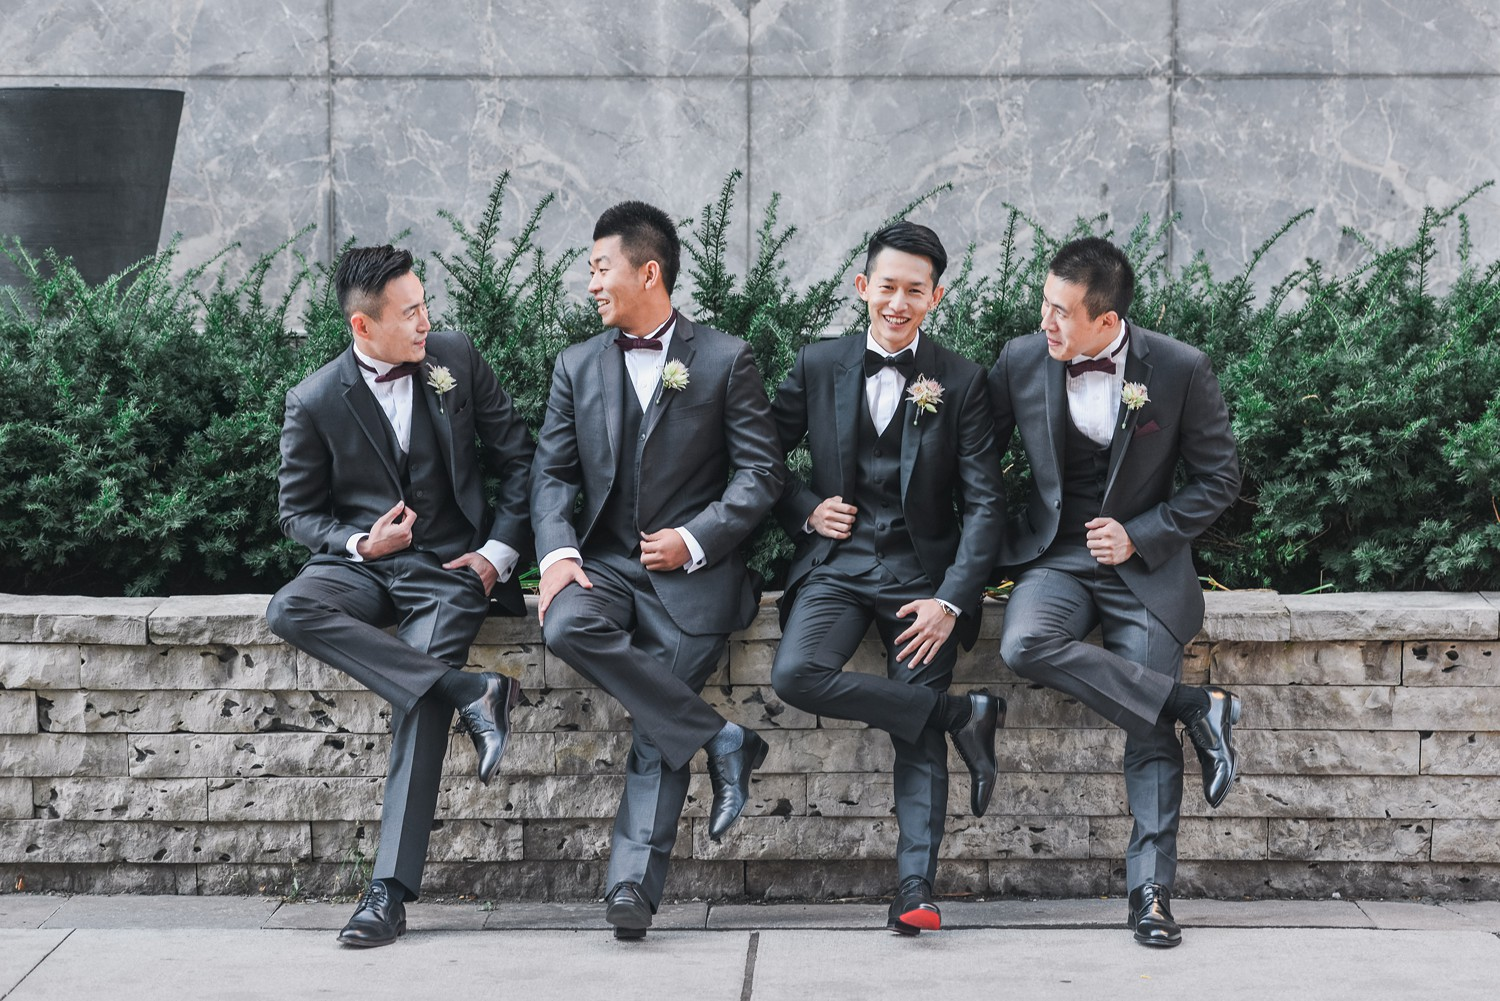 Groomsmen Portraits at Luxury Yorkville Vinci Toronto Four Season Hotel Wedding Photos with Chinese Bride and Groom